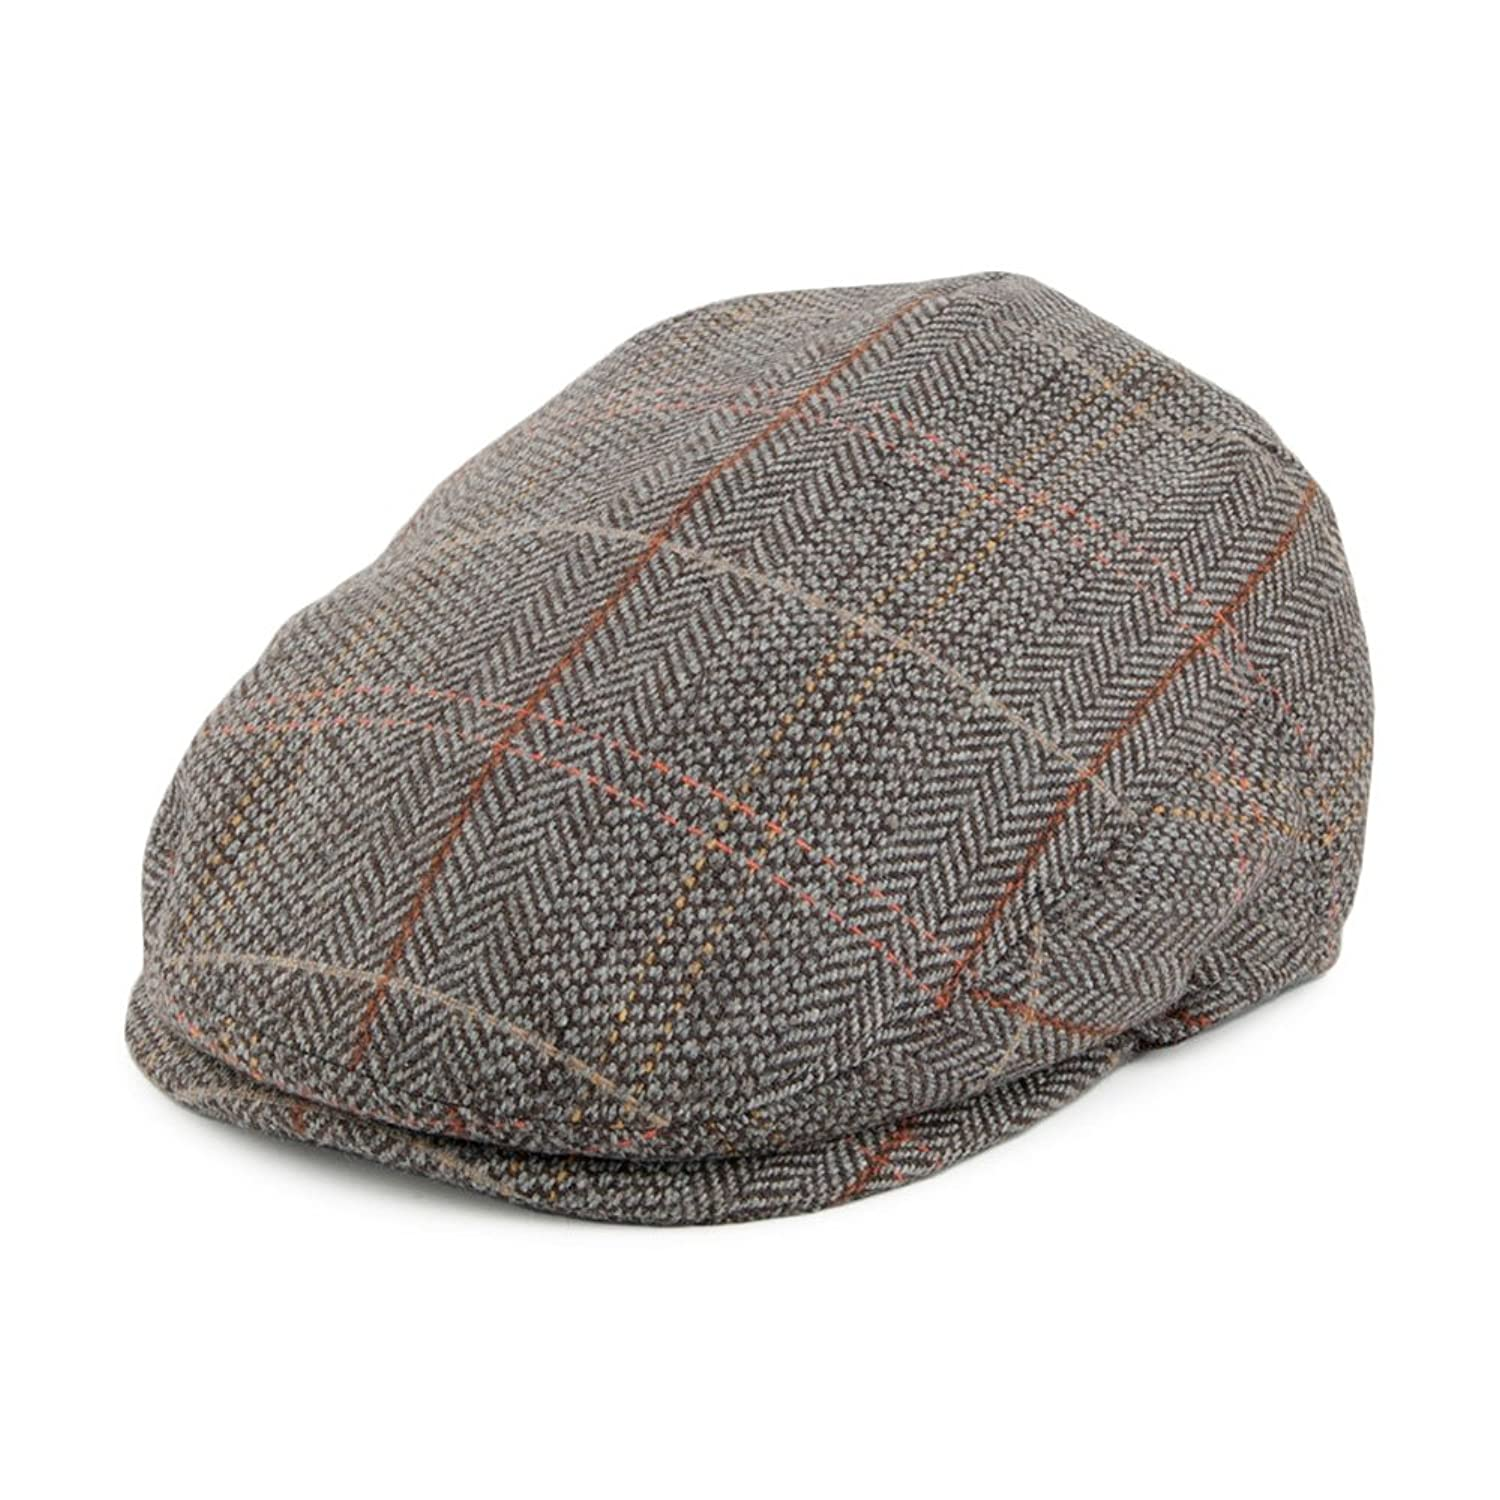 5f0c6848b83 Jaxon   James Baby Tweed Flat Cap - Brown-Grey